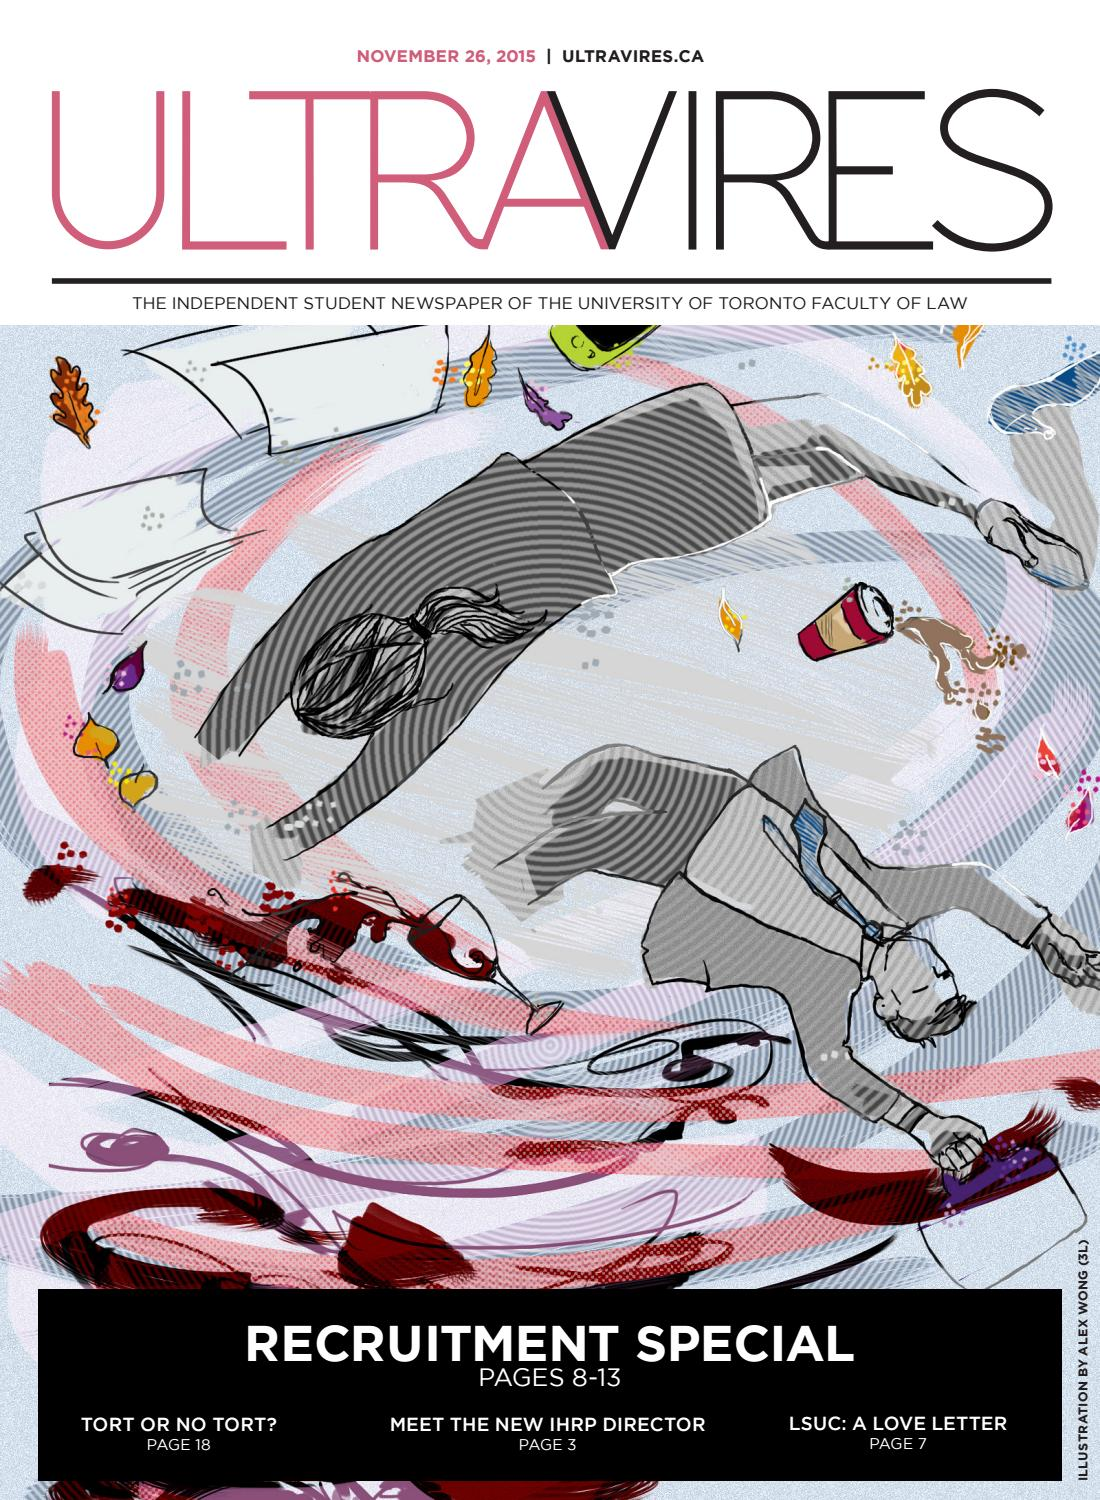 Ultra Vires Vol 17 Issue 3: 2015 November by ultravires - issuu